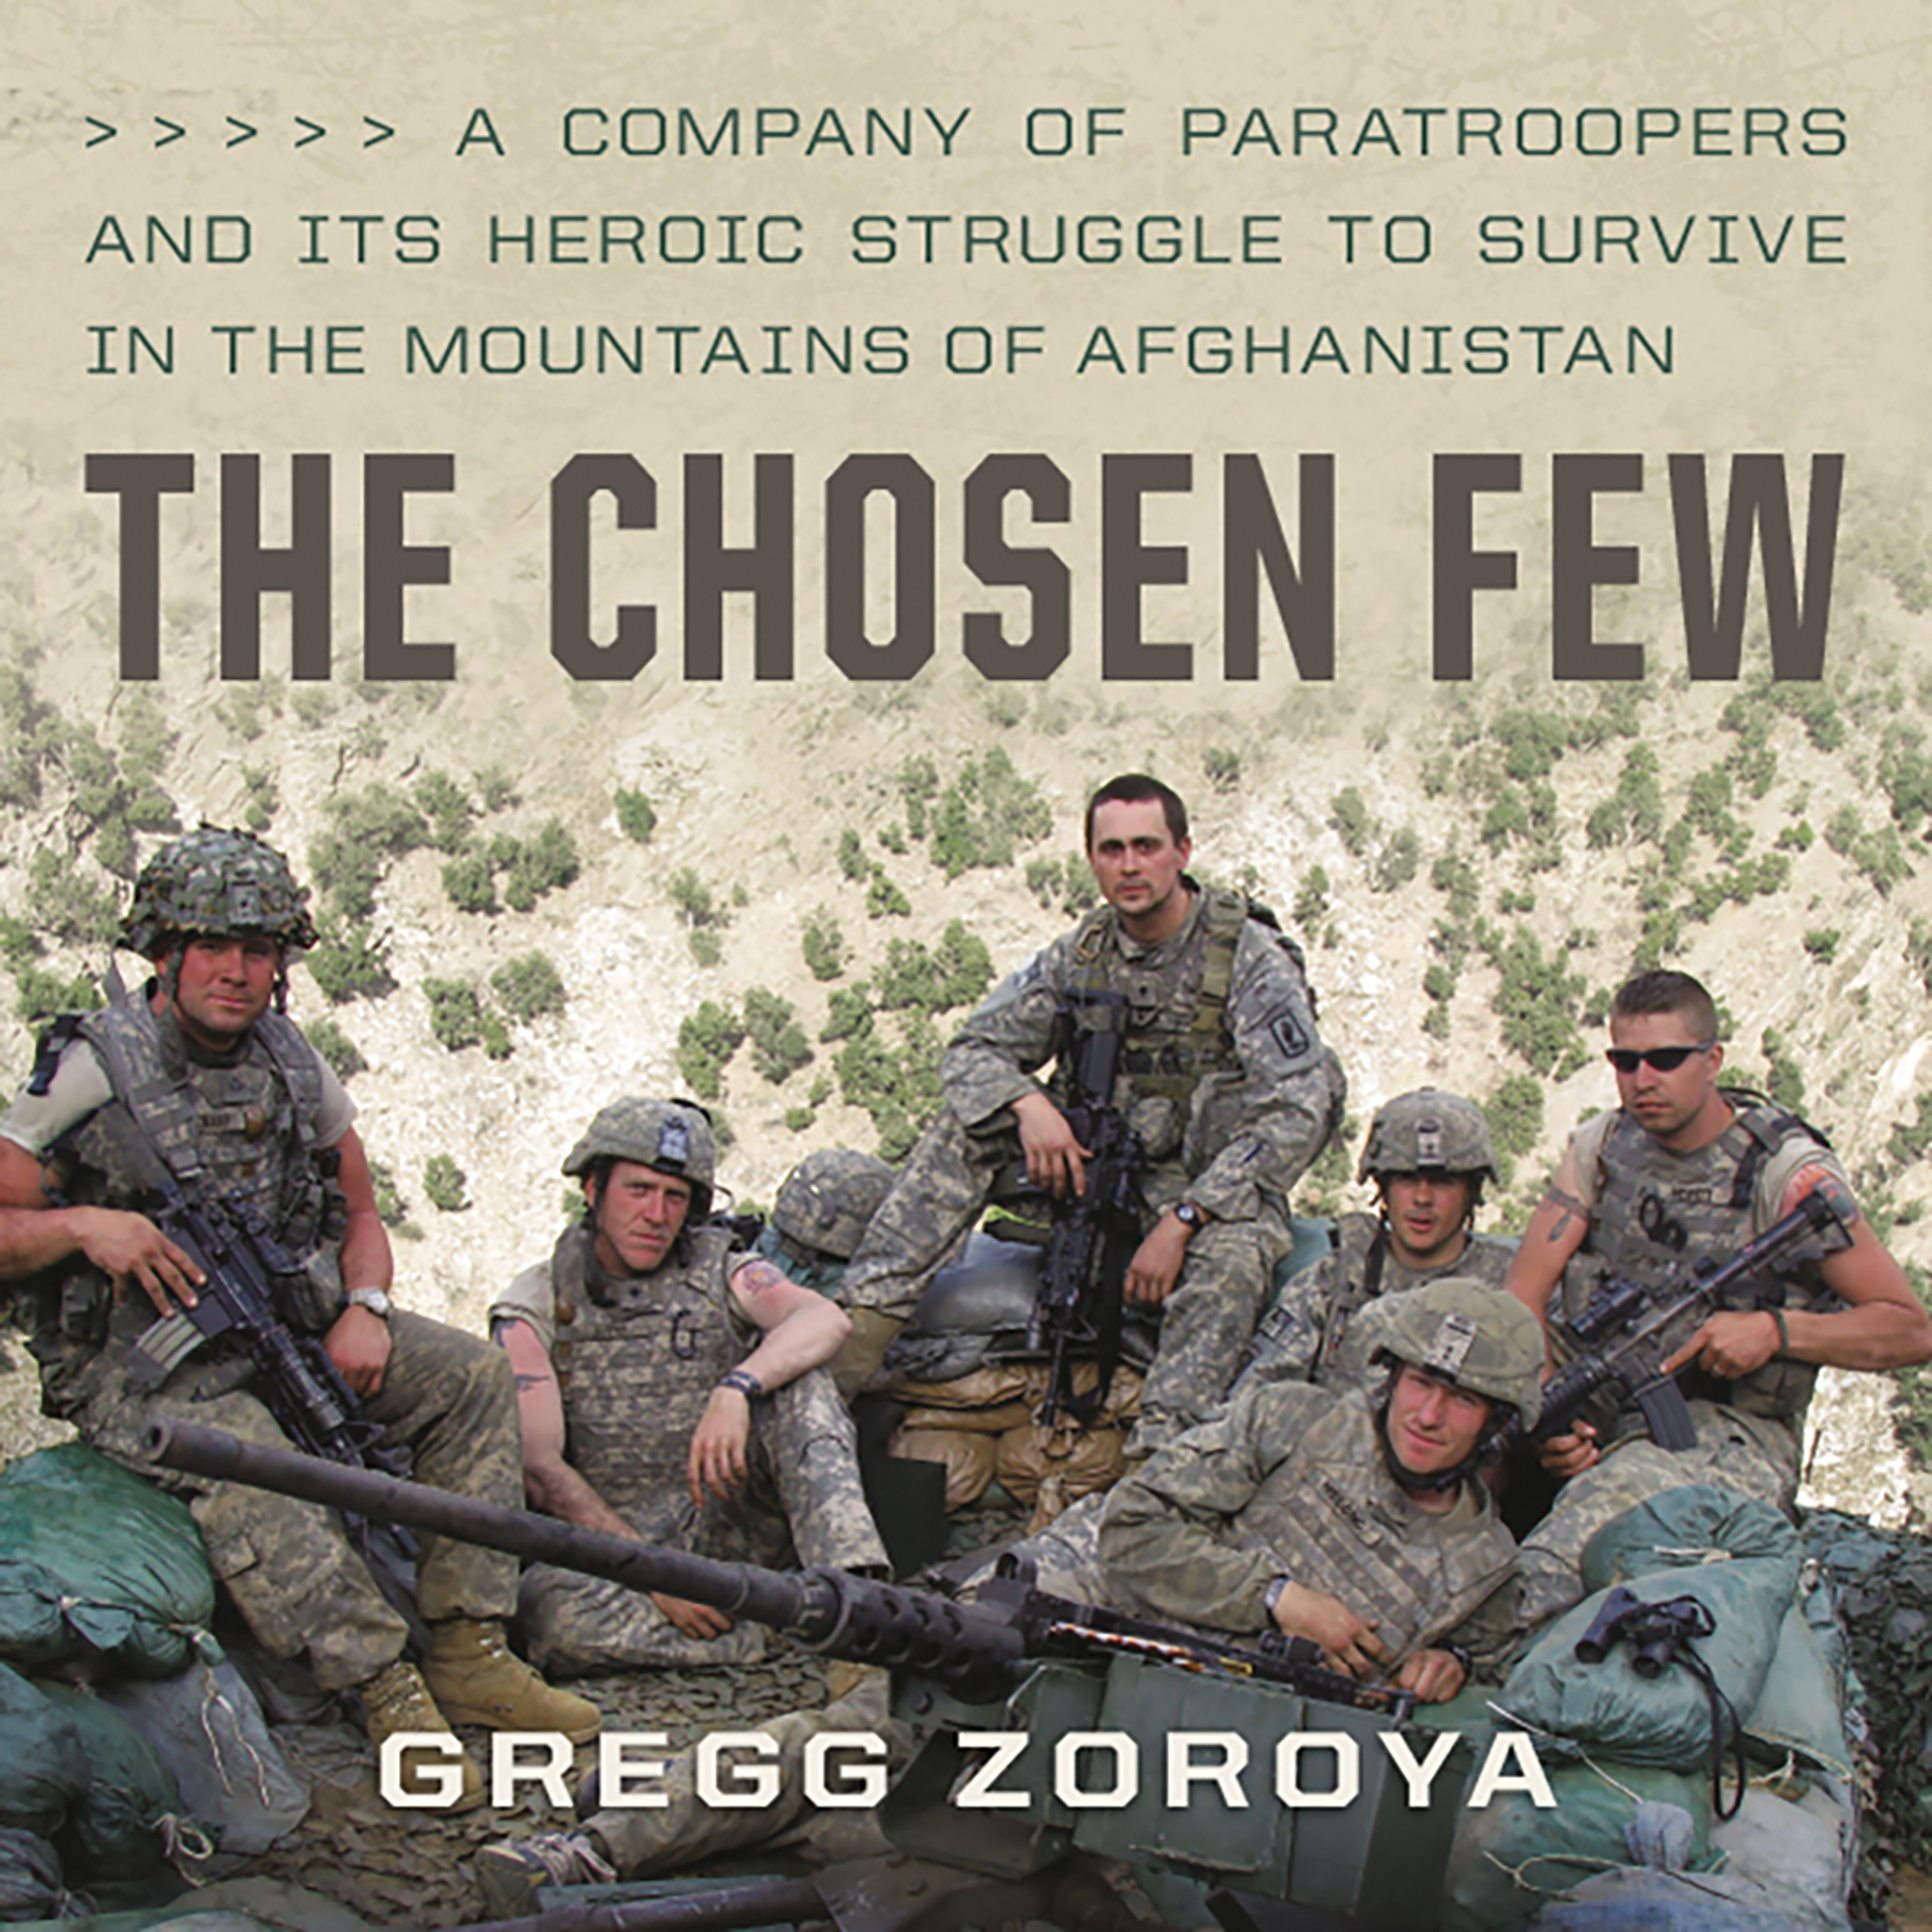 Printable The Chosen Few: A Company of Paratroopers and Its Heroic Struggle to Survive in the Mountains of Afghanistan Audiobook Cover Art